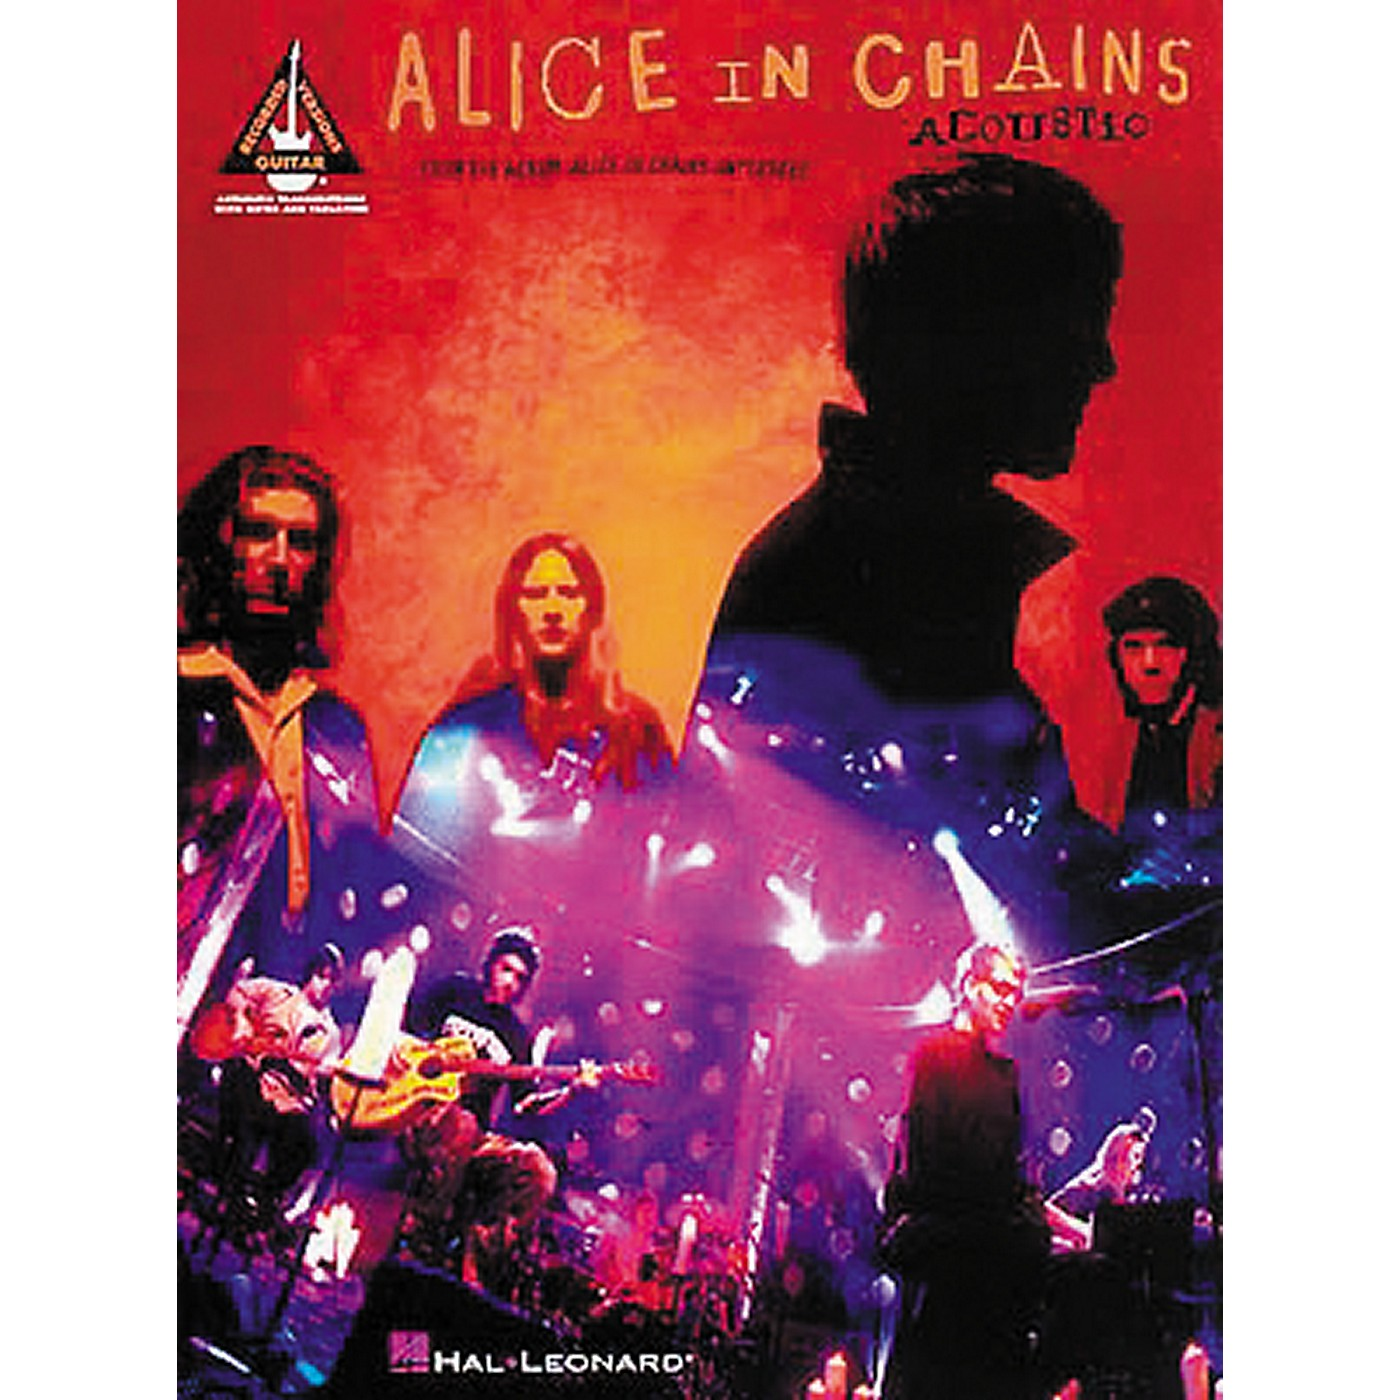 Hal Leonard Alice In Chains Acoustic Unplugged Guitar Tab Songbook thumbnail